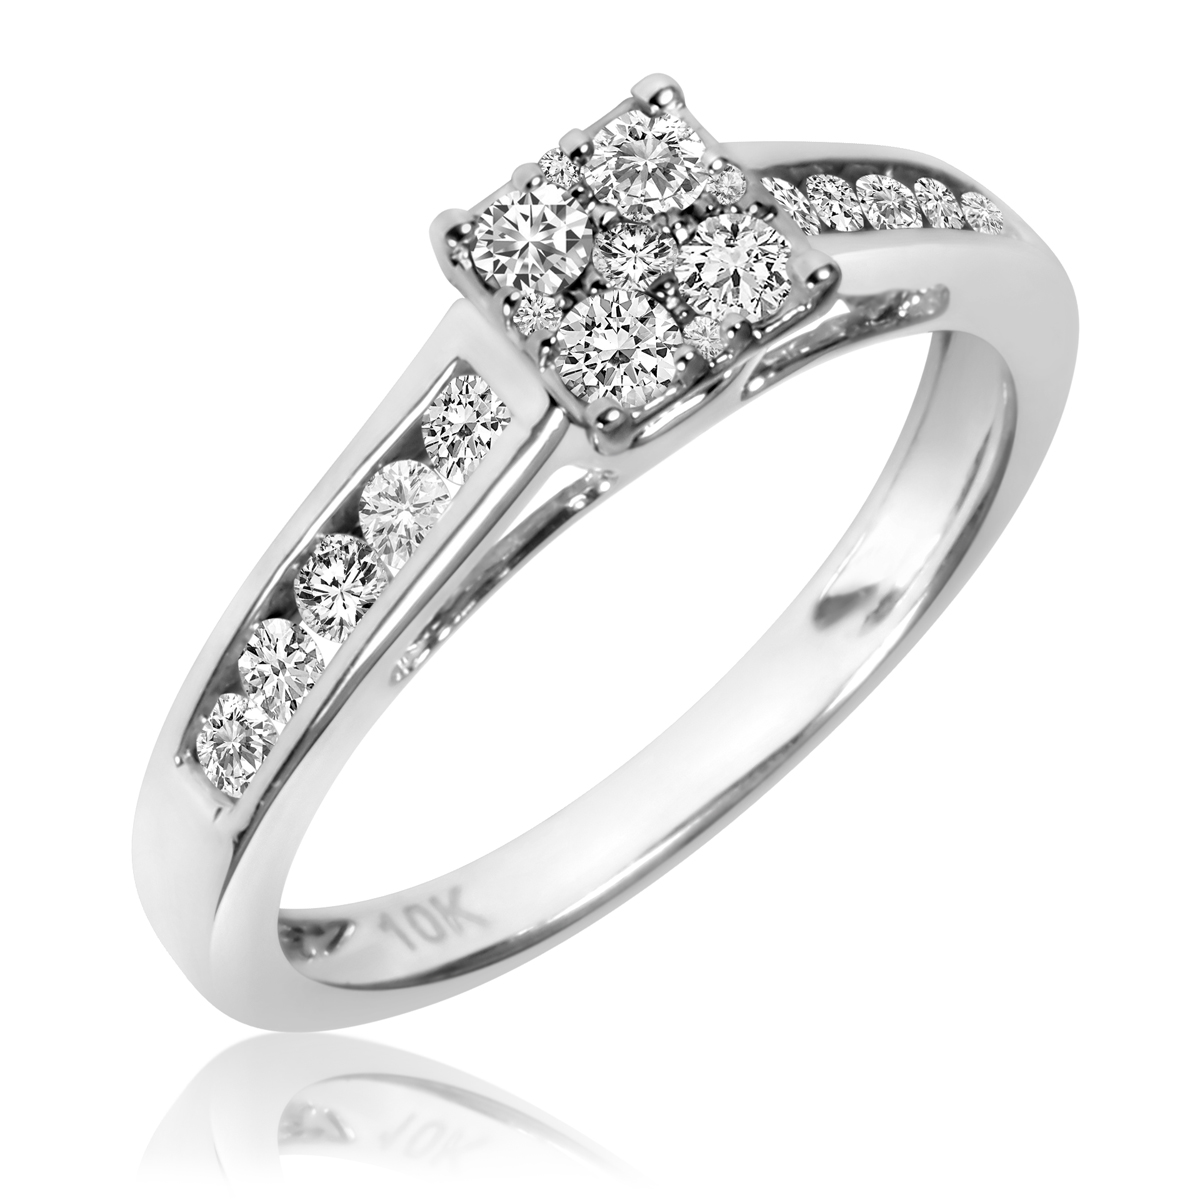 1 2 Carat TW Diamond Ladies Engagement Ring 14K White Gold